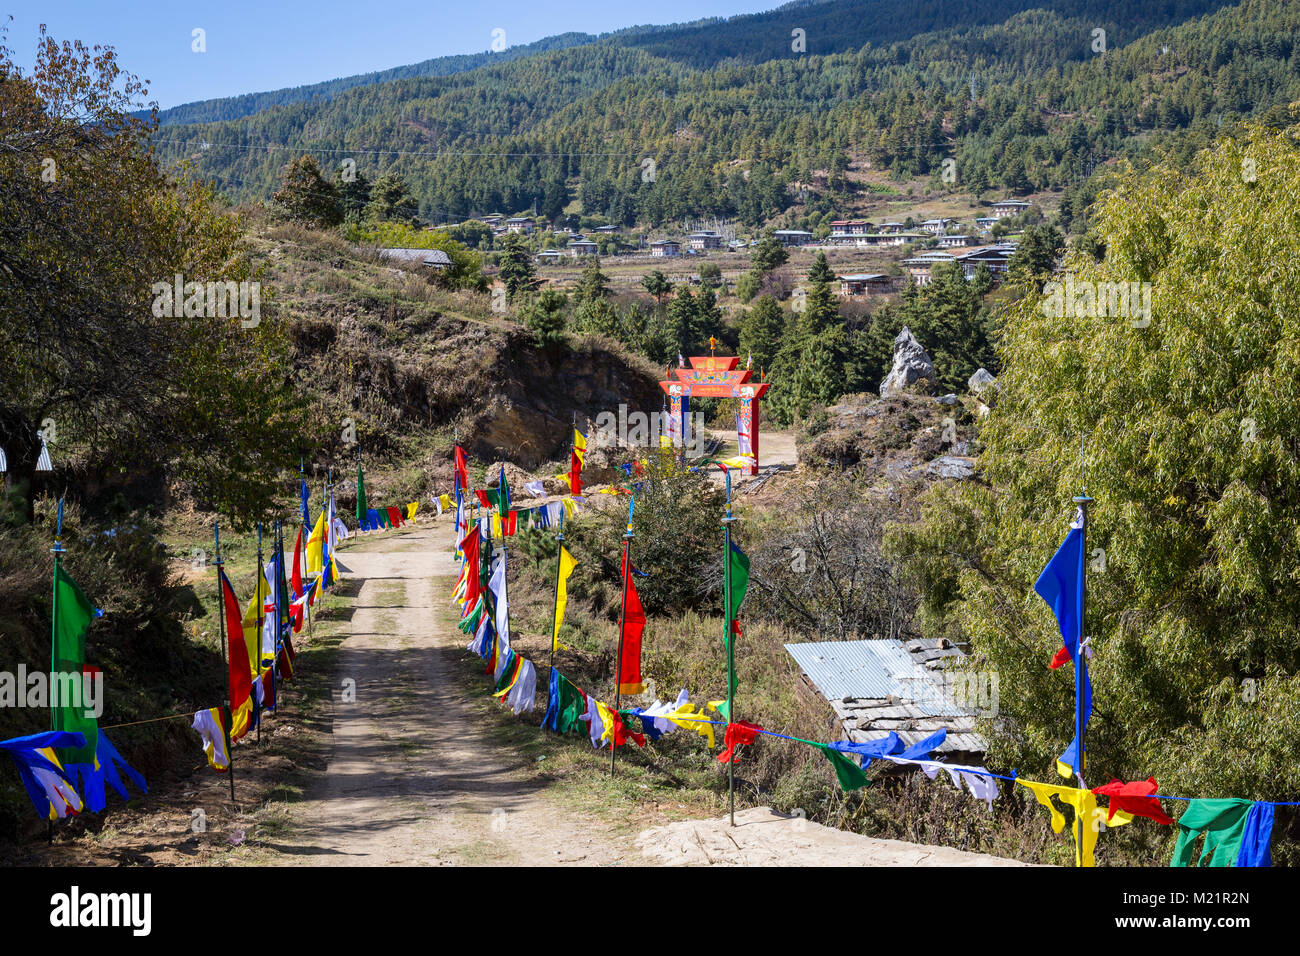 Prakhar Lhakhang, Bumthang, Bhutan.  Pathway Leading to the Monastery, Decorated for the King's Arrival. - Stock Image